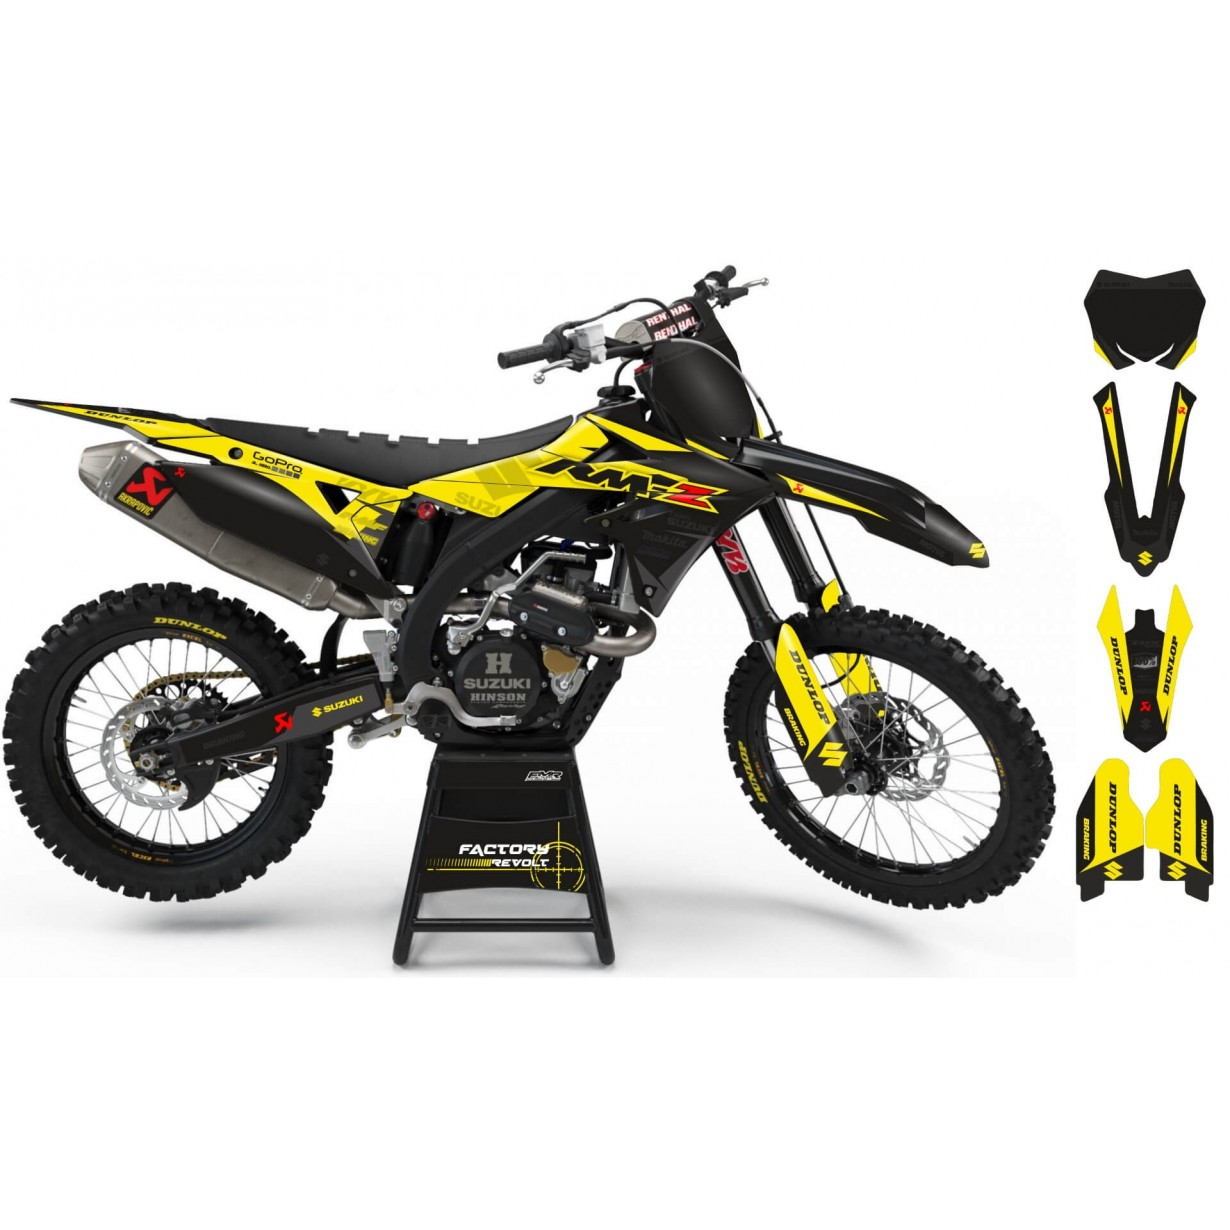 Kit déco Perso SUZUKI Factory Revolt A26D3 black/yellow